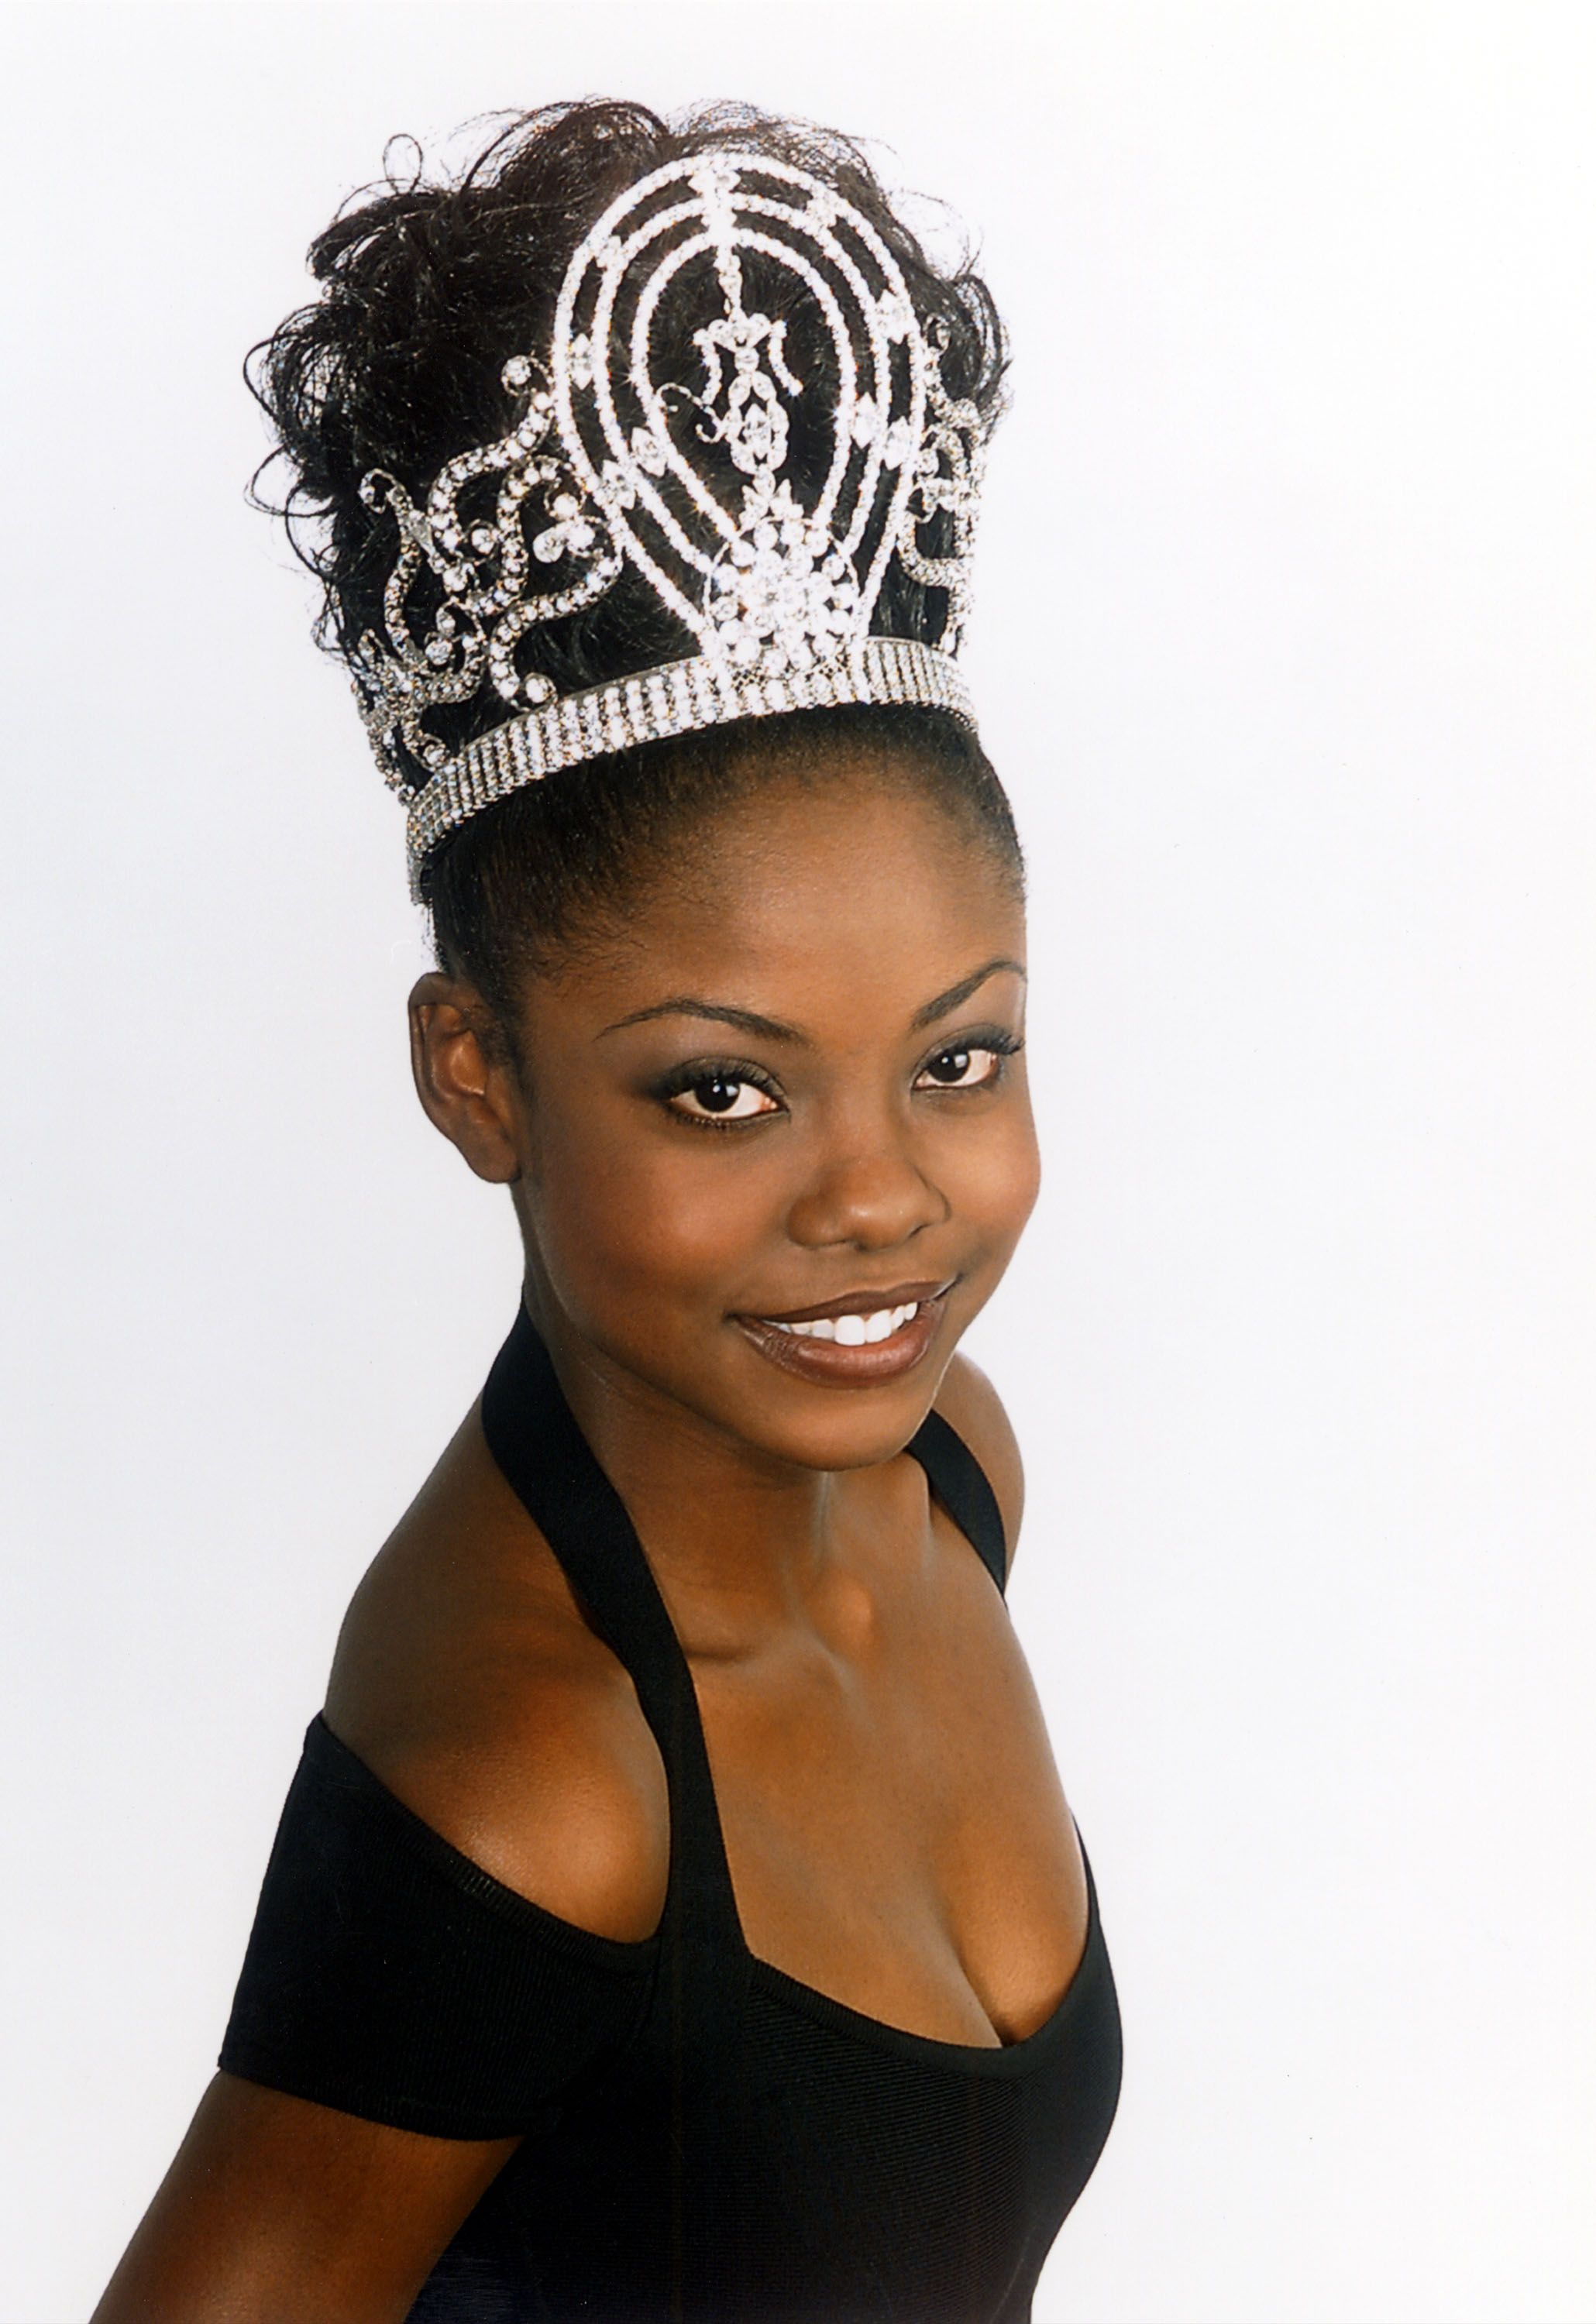 10 Notable African and African-American Pageant Winners